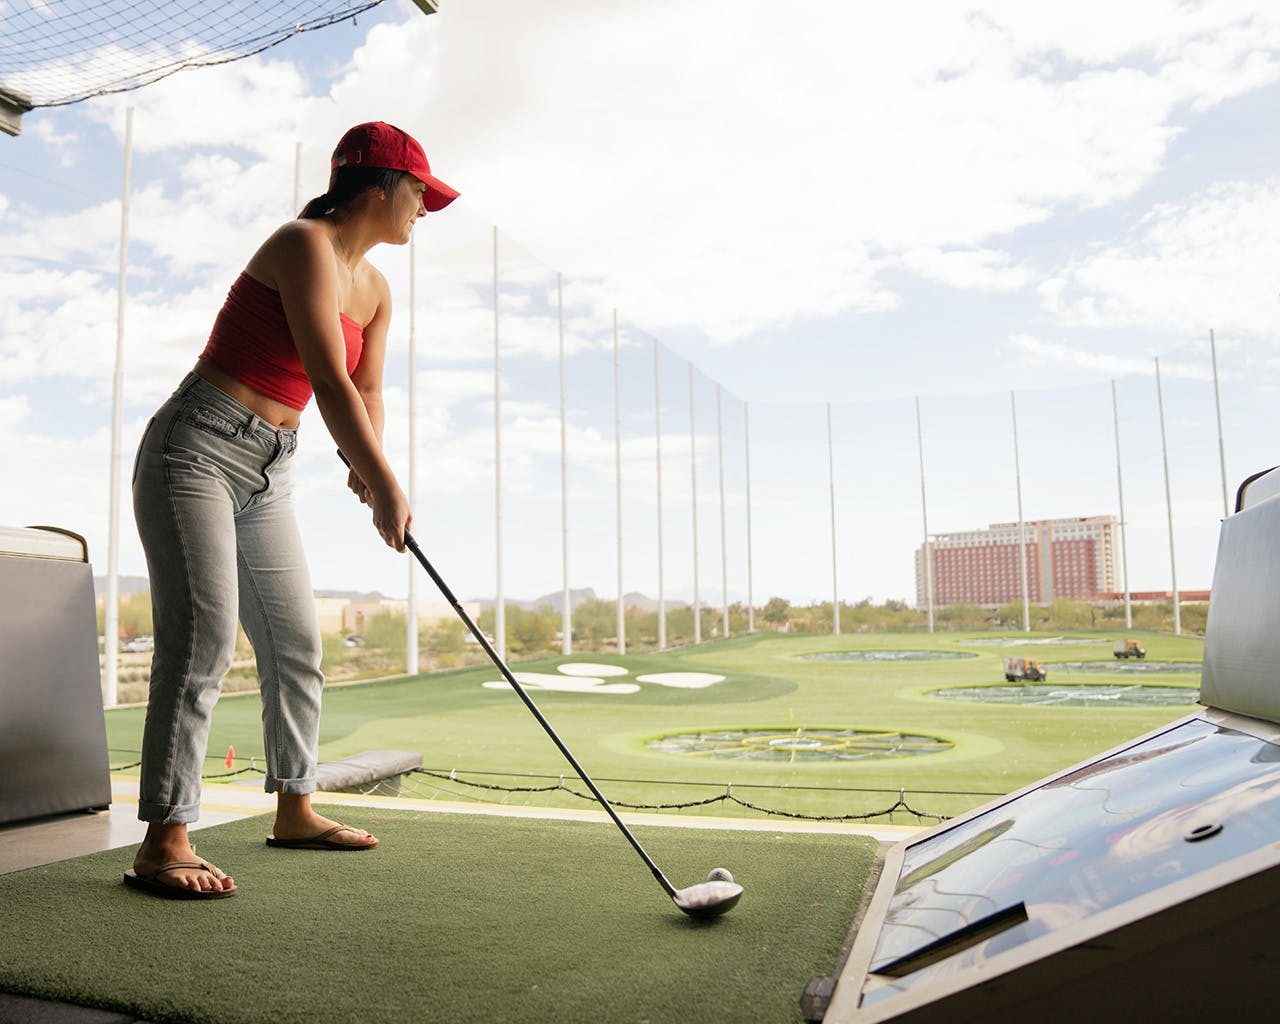 Here's A 5-minute Crash Course On Golf If You've Always Wanted To Try It